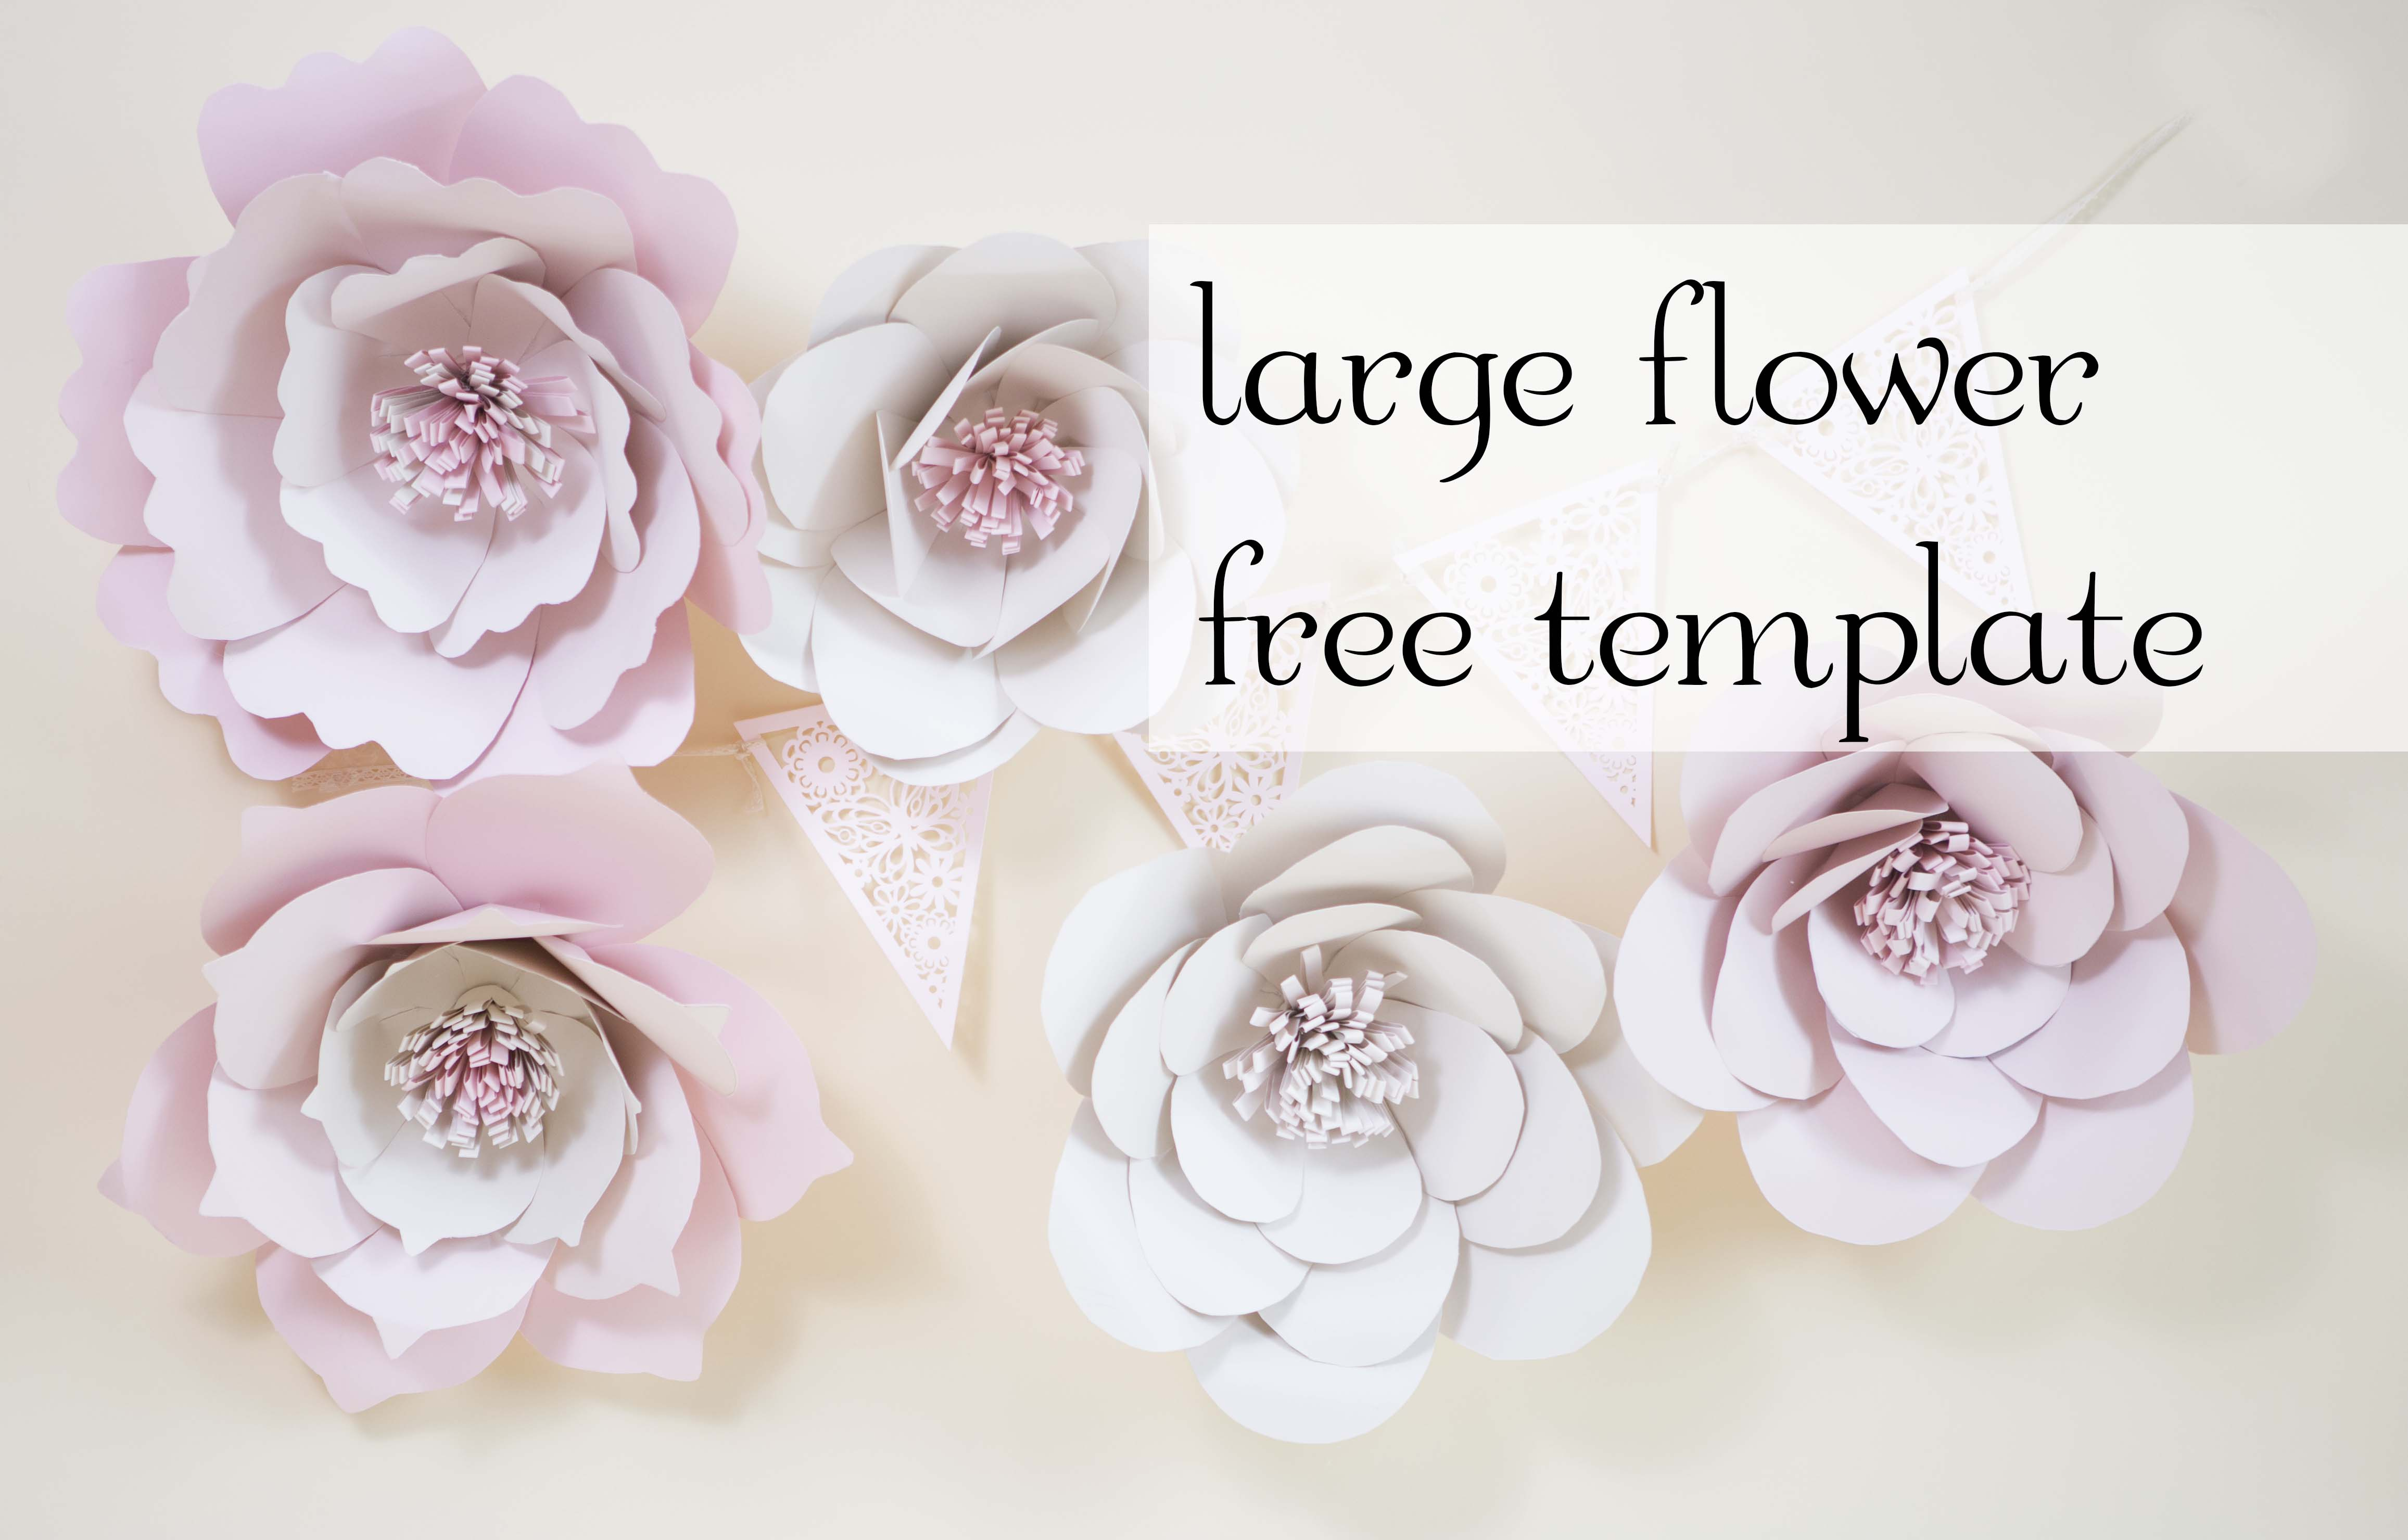 free printable paper flower templates - giant paper flowers free template charmed by ashley